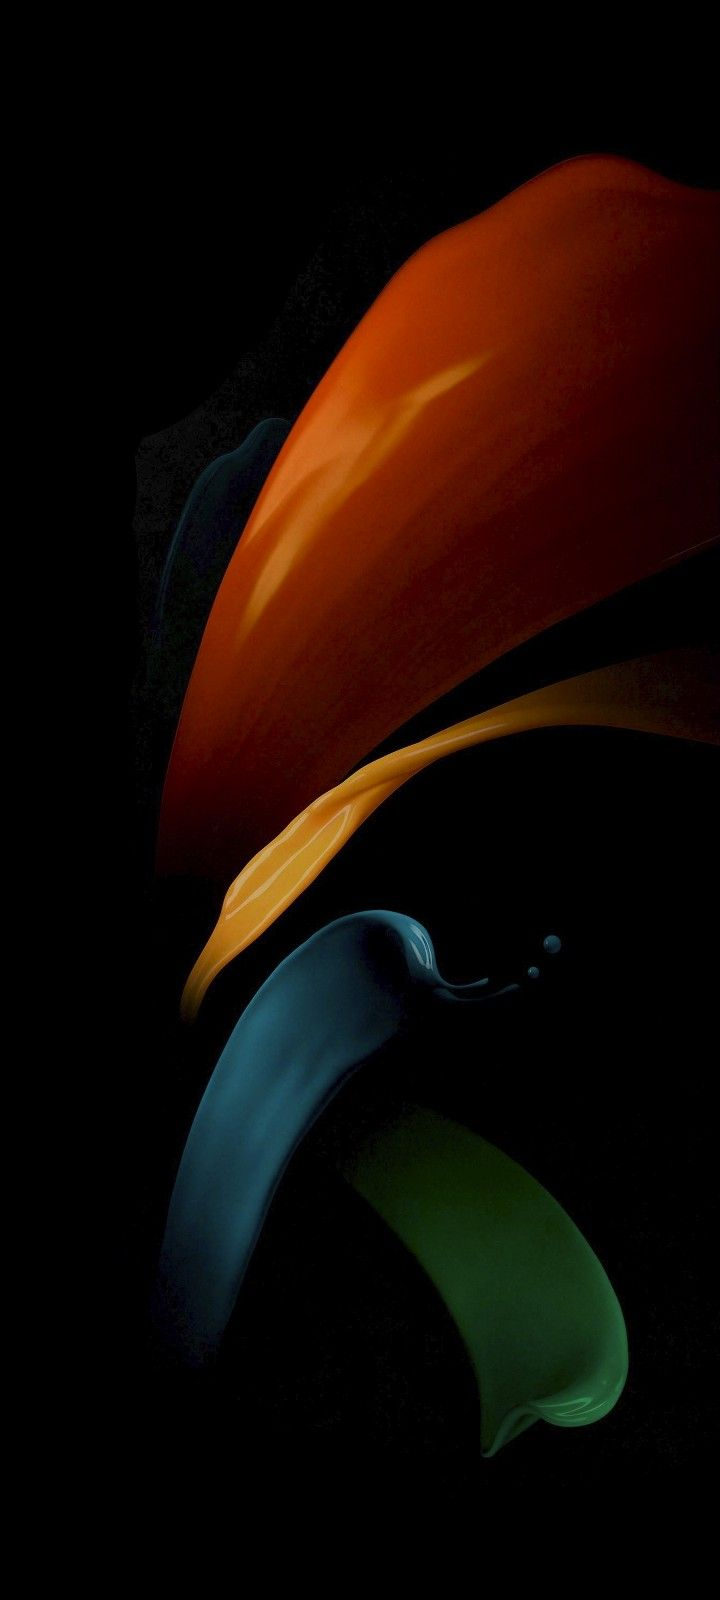 Pin By Ryuj On Axwallpapers Cool Wallpapers For Phones Color Wallpaper Iphone Wallpaper Website